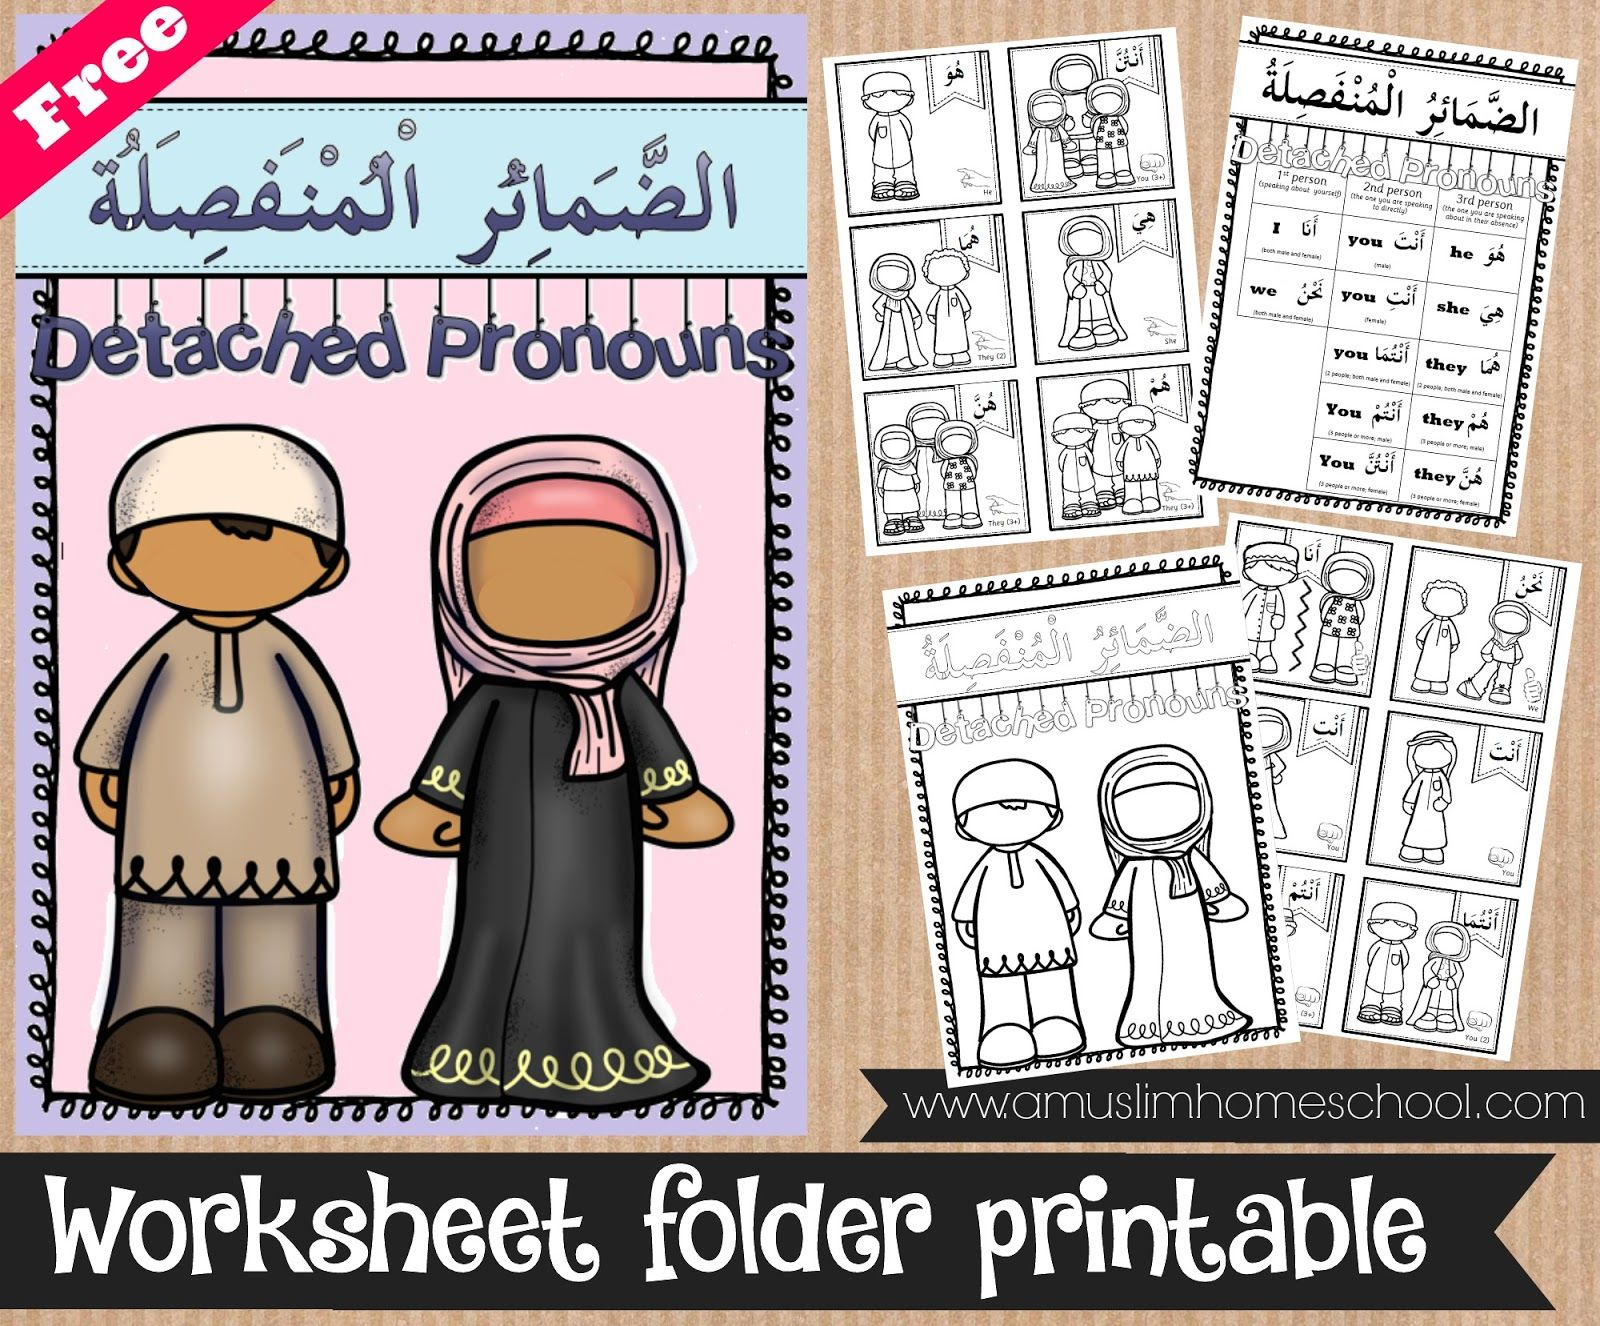 Arabic Detached Pronouns Worksheet Printable